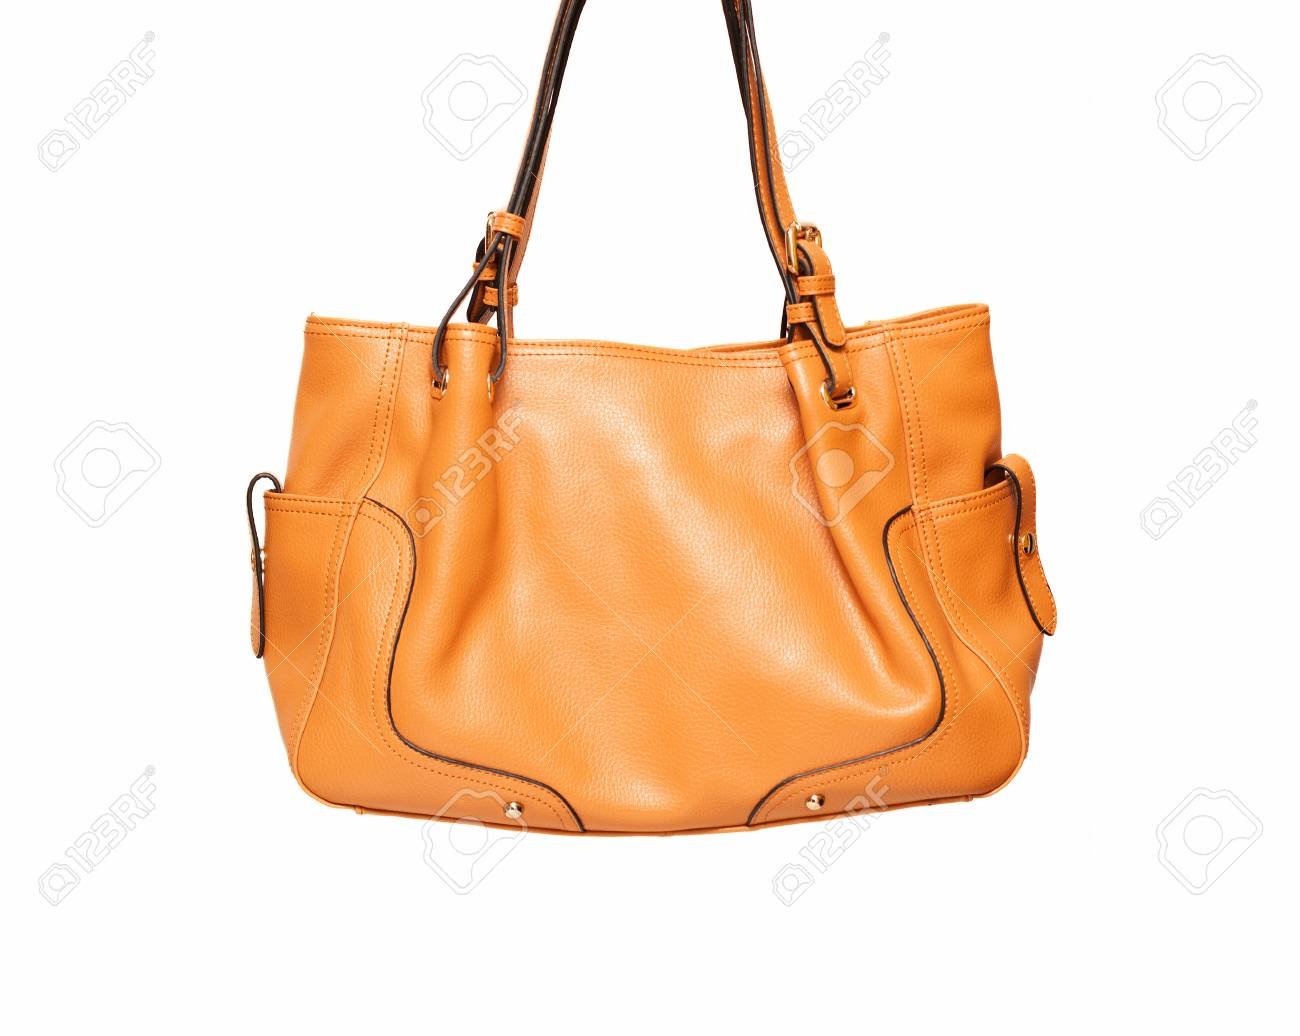 a335352bcf Brown ladies leather handbag isolated on white background Stock Photo -  60471980